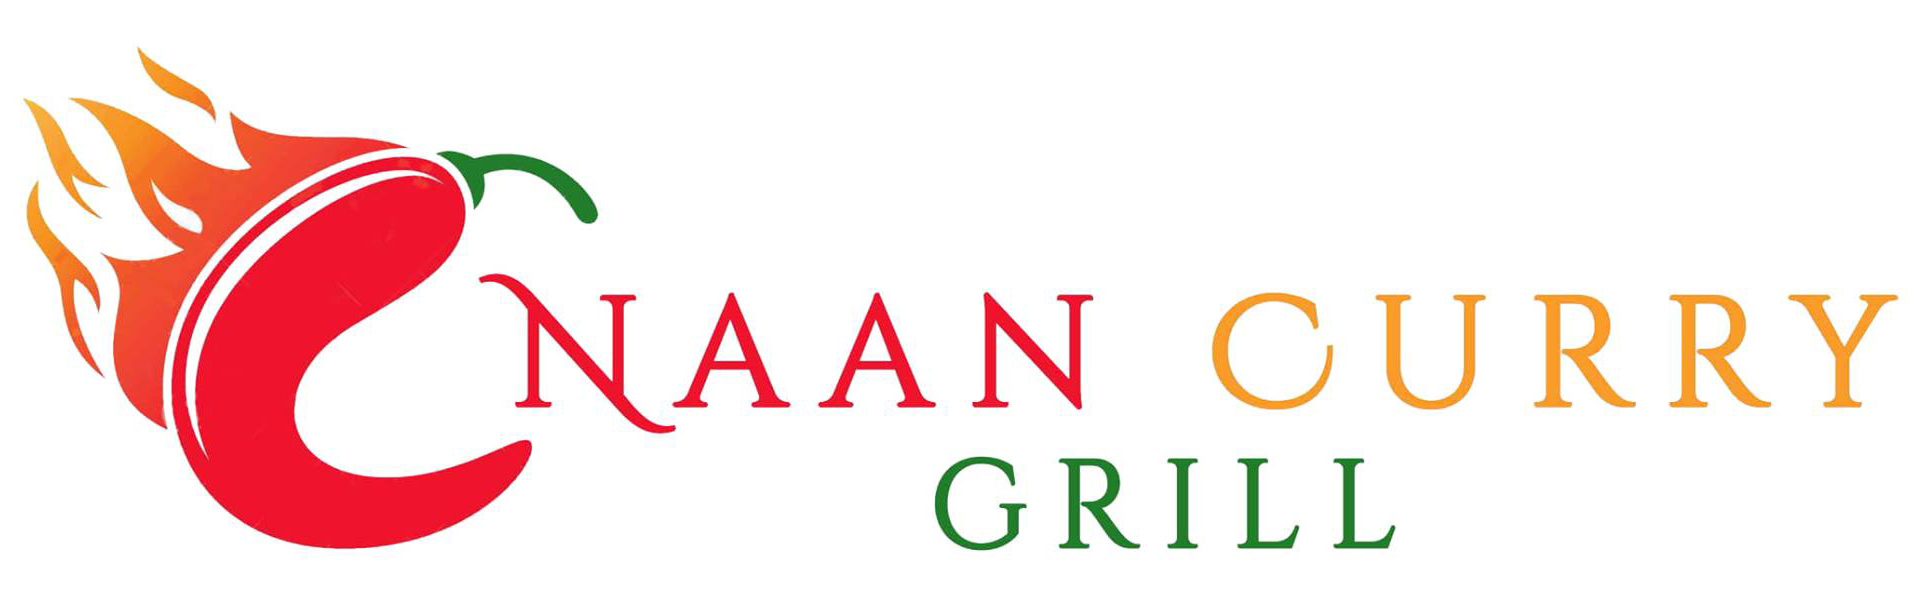 Naan Curry Grill Logo